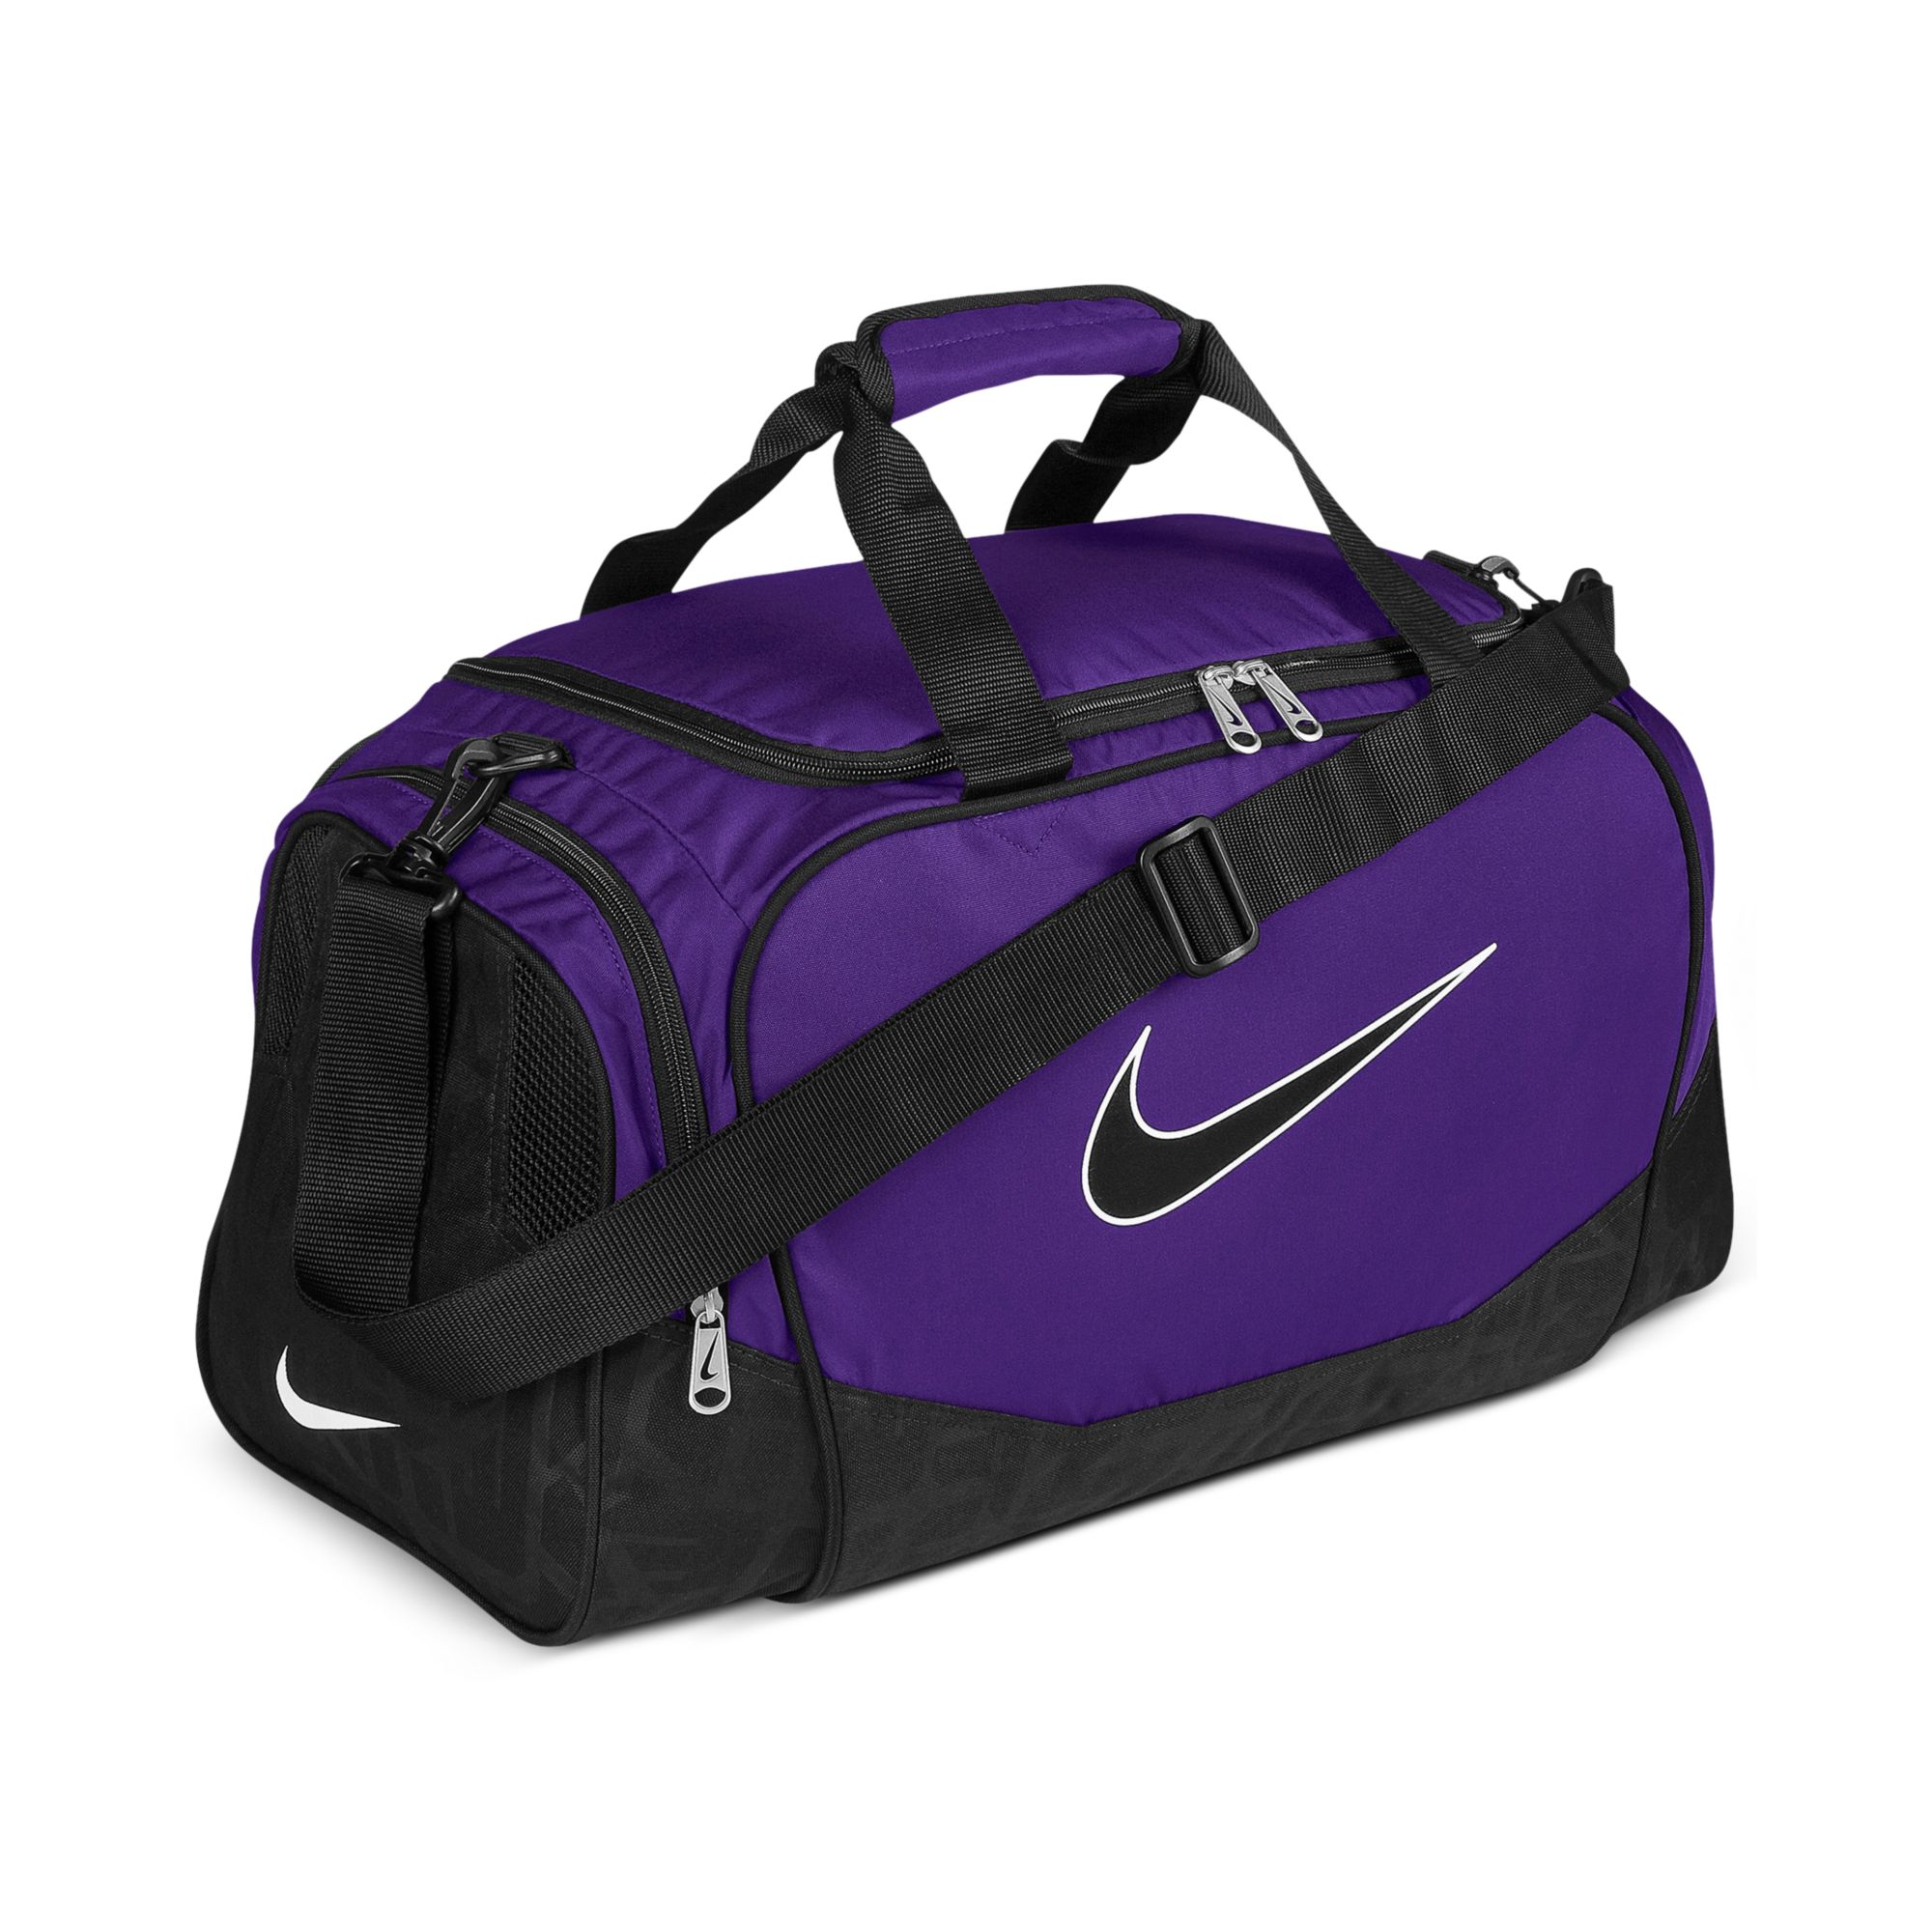 Lyst - Nike Small Duffle Bag in Purple for Men 49cc51aa28eaa